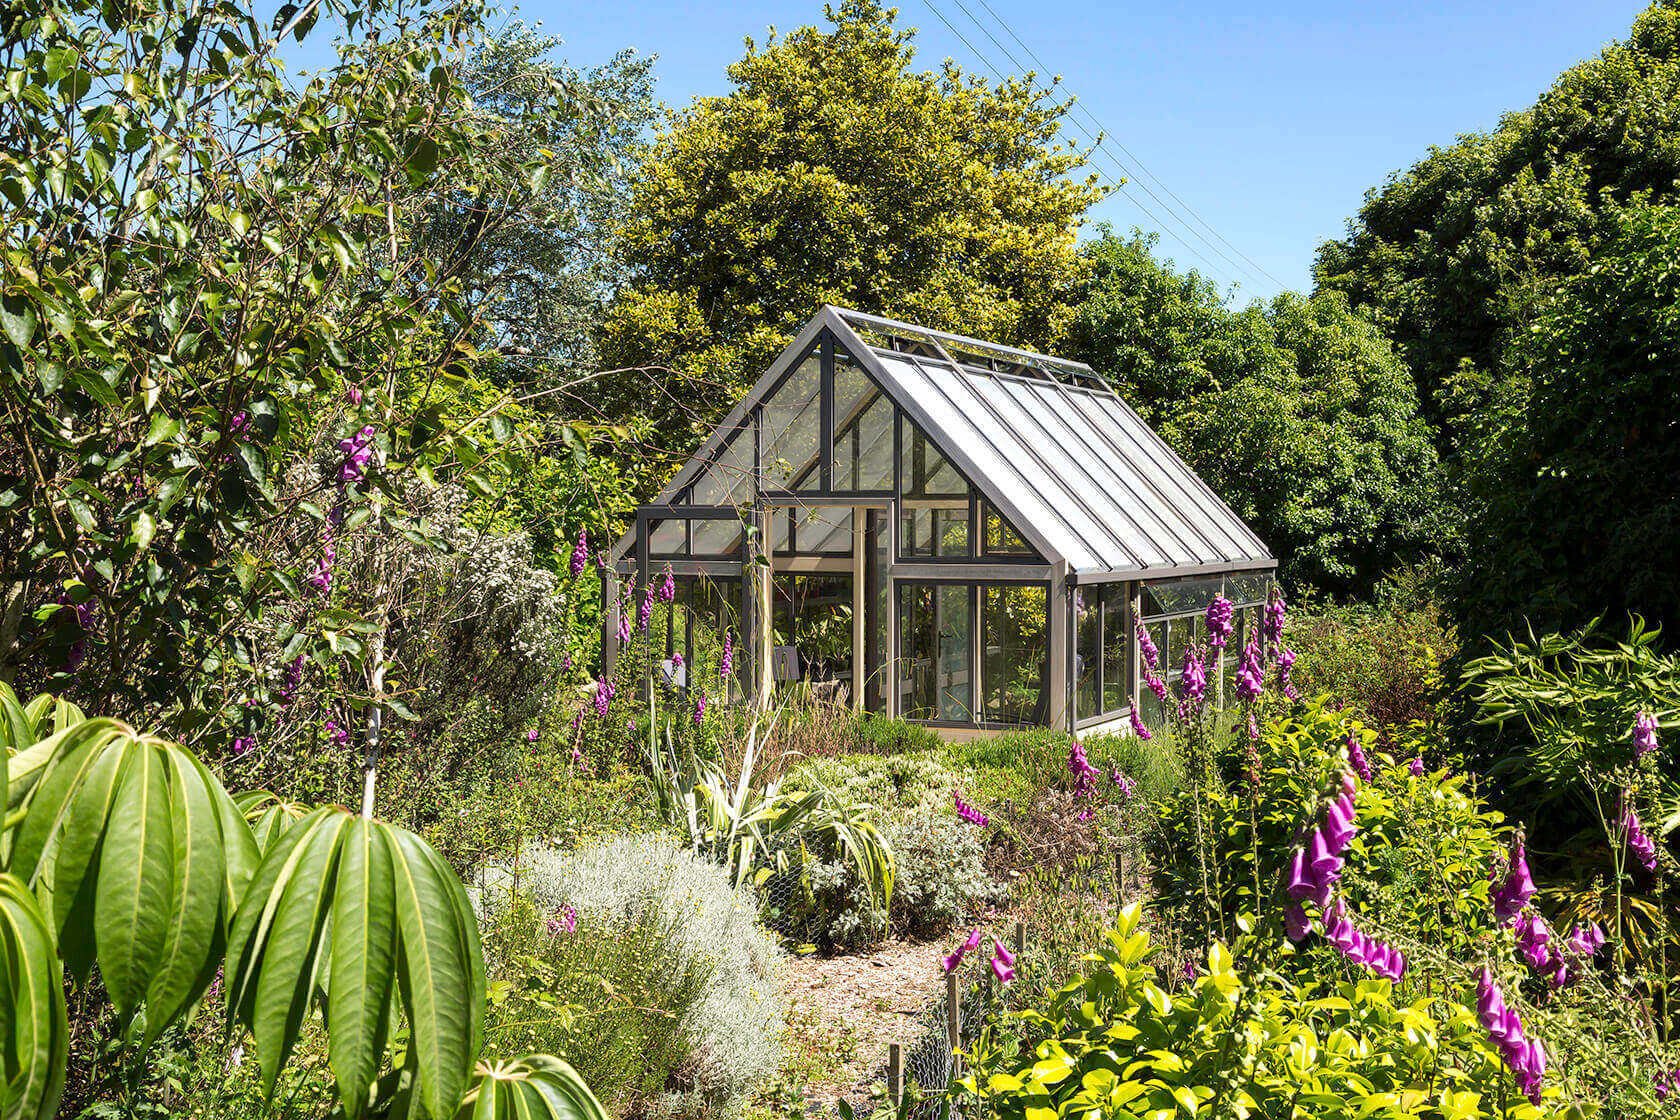 A Greenhouse for The Plant Enthusiast